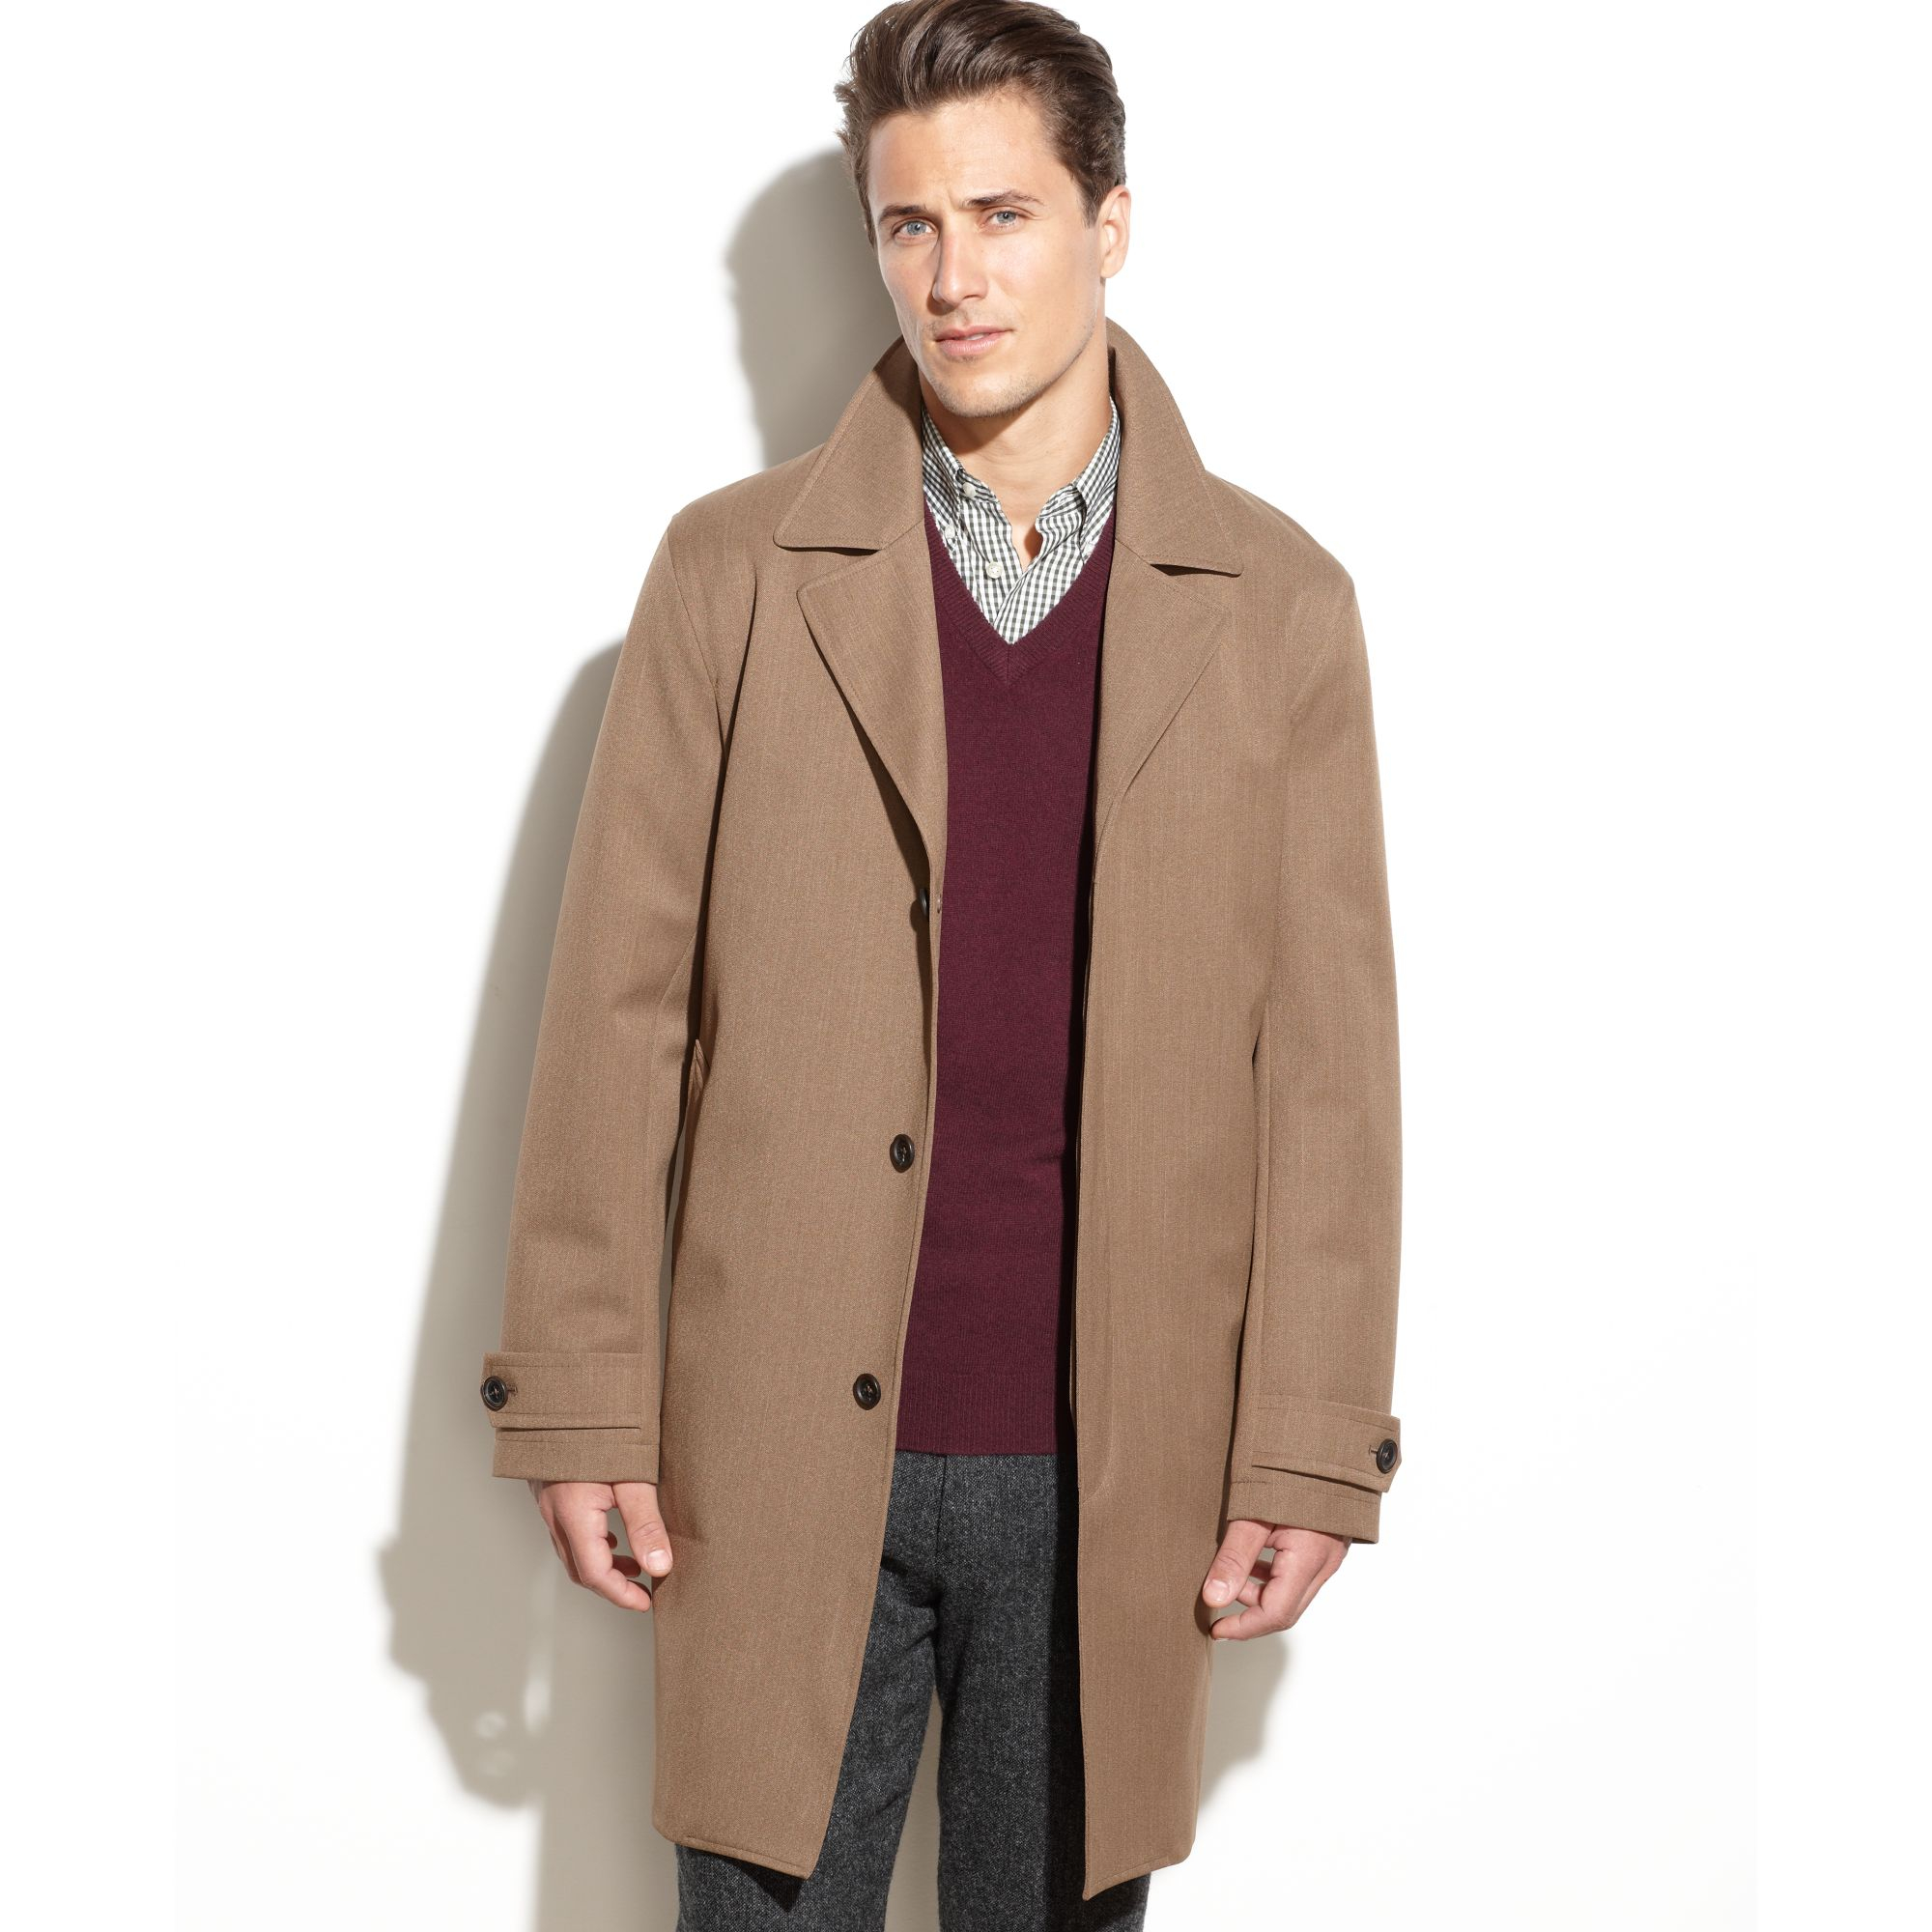 Michael kors All Weather Raincoat in Natural for Men | Lyst